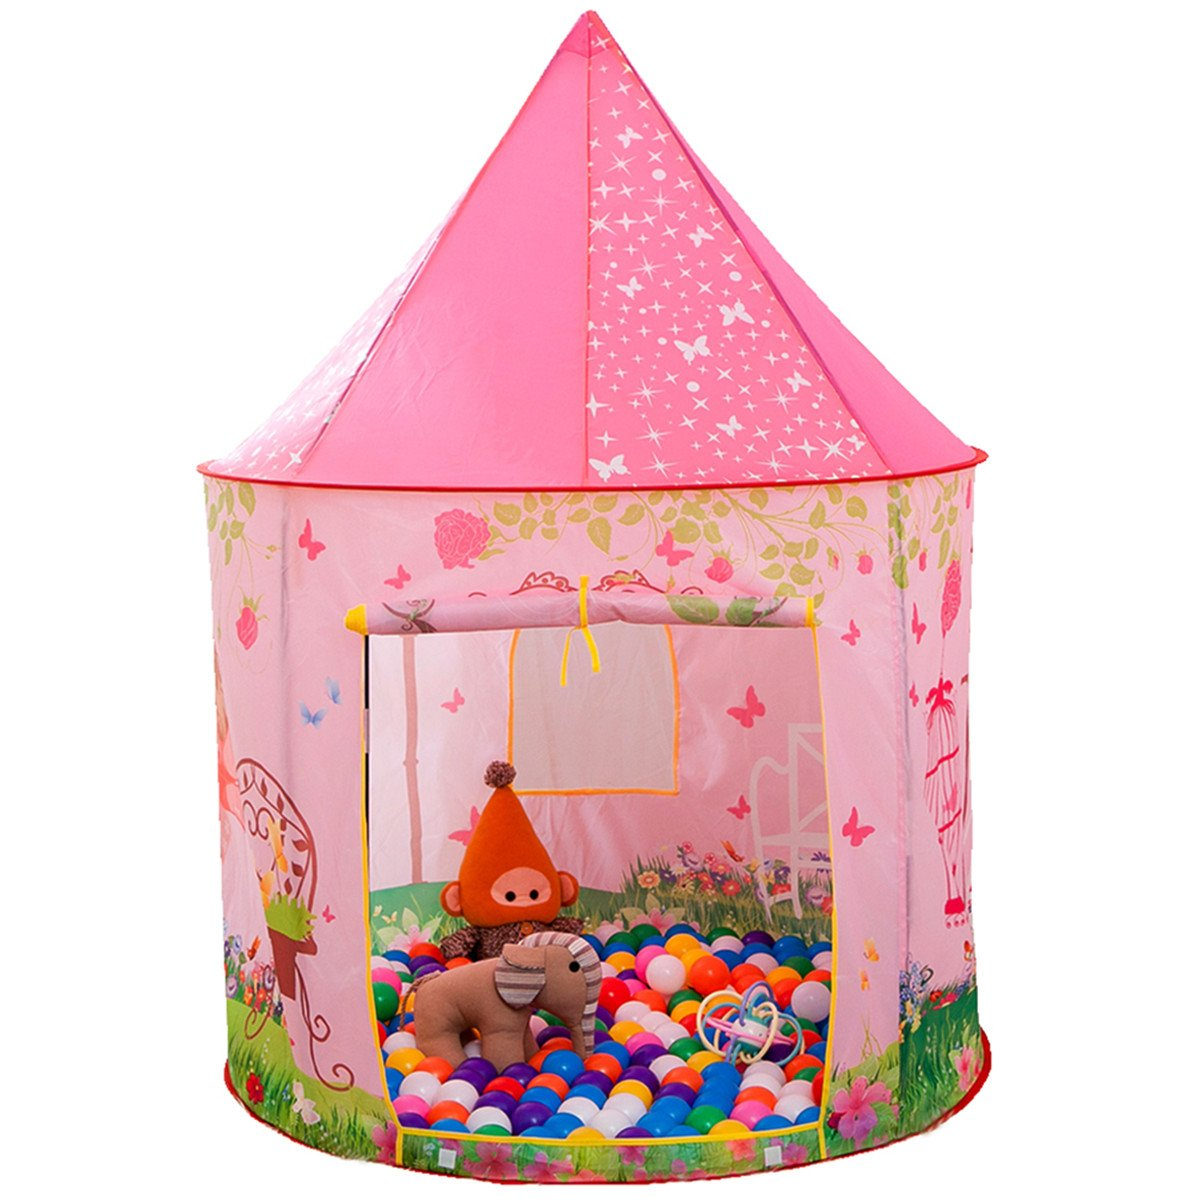 Anyshock Kids Large Tent, Princess Castle Play Tent Girls Pop Up Baby Toys Dollhouse Outdoor and Indoor Playhouse for 1-8 Years Old Boy Toddler Amazon.com: